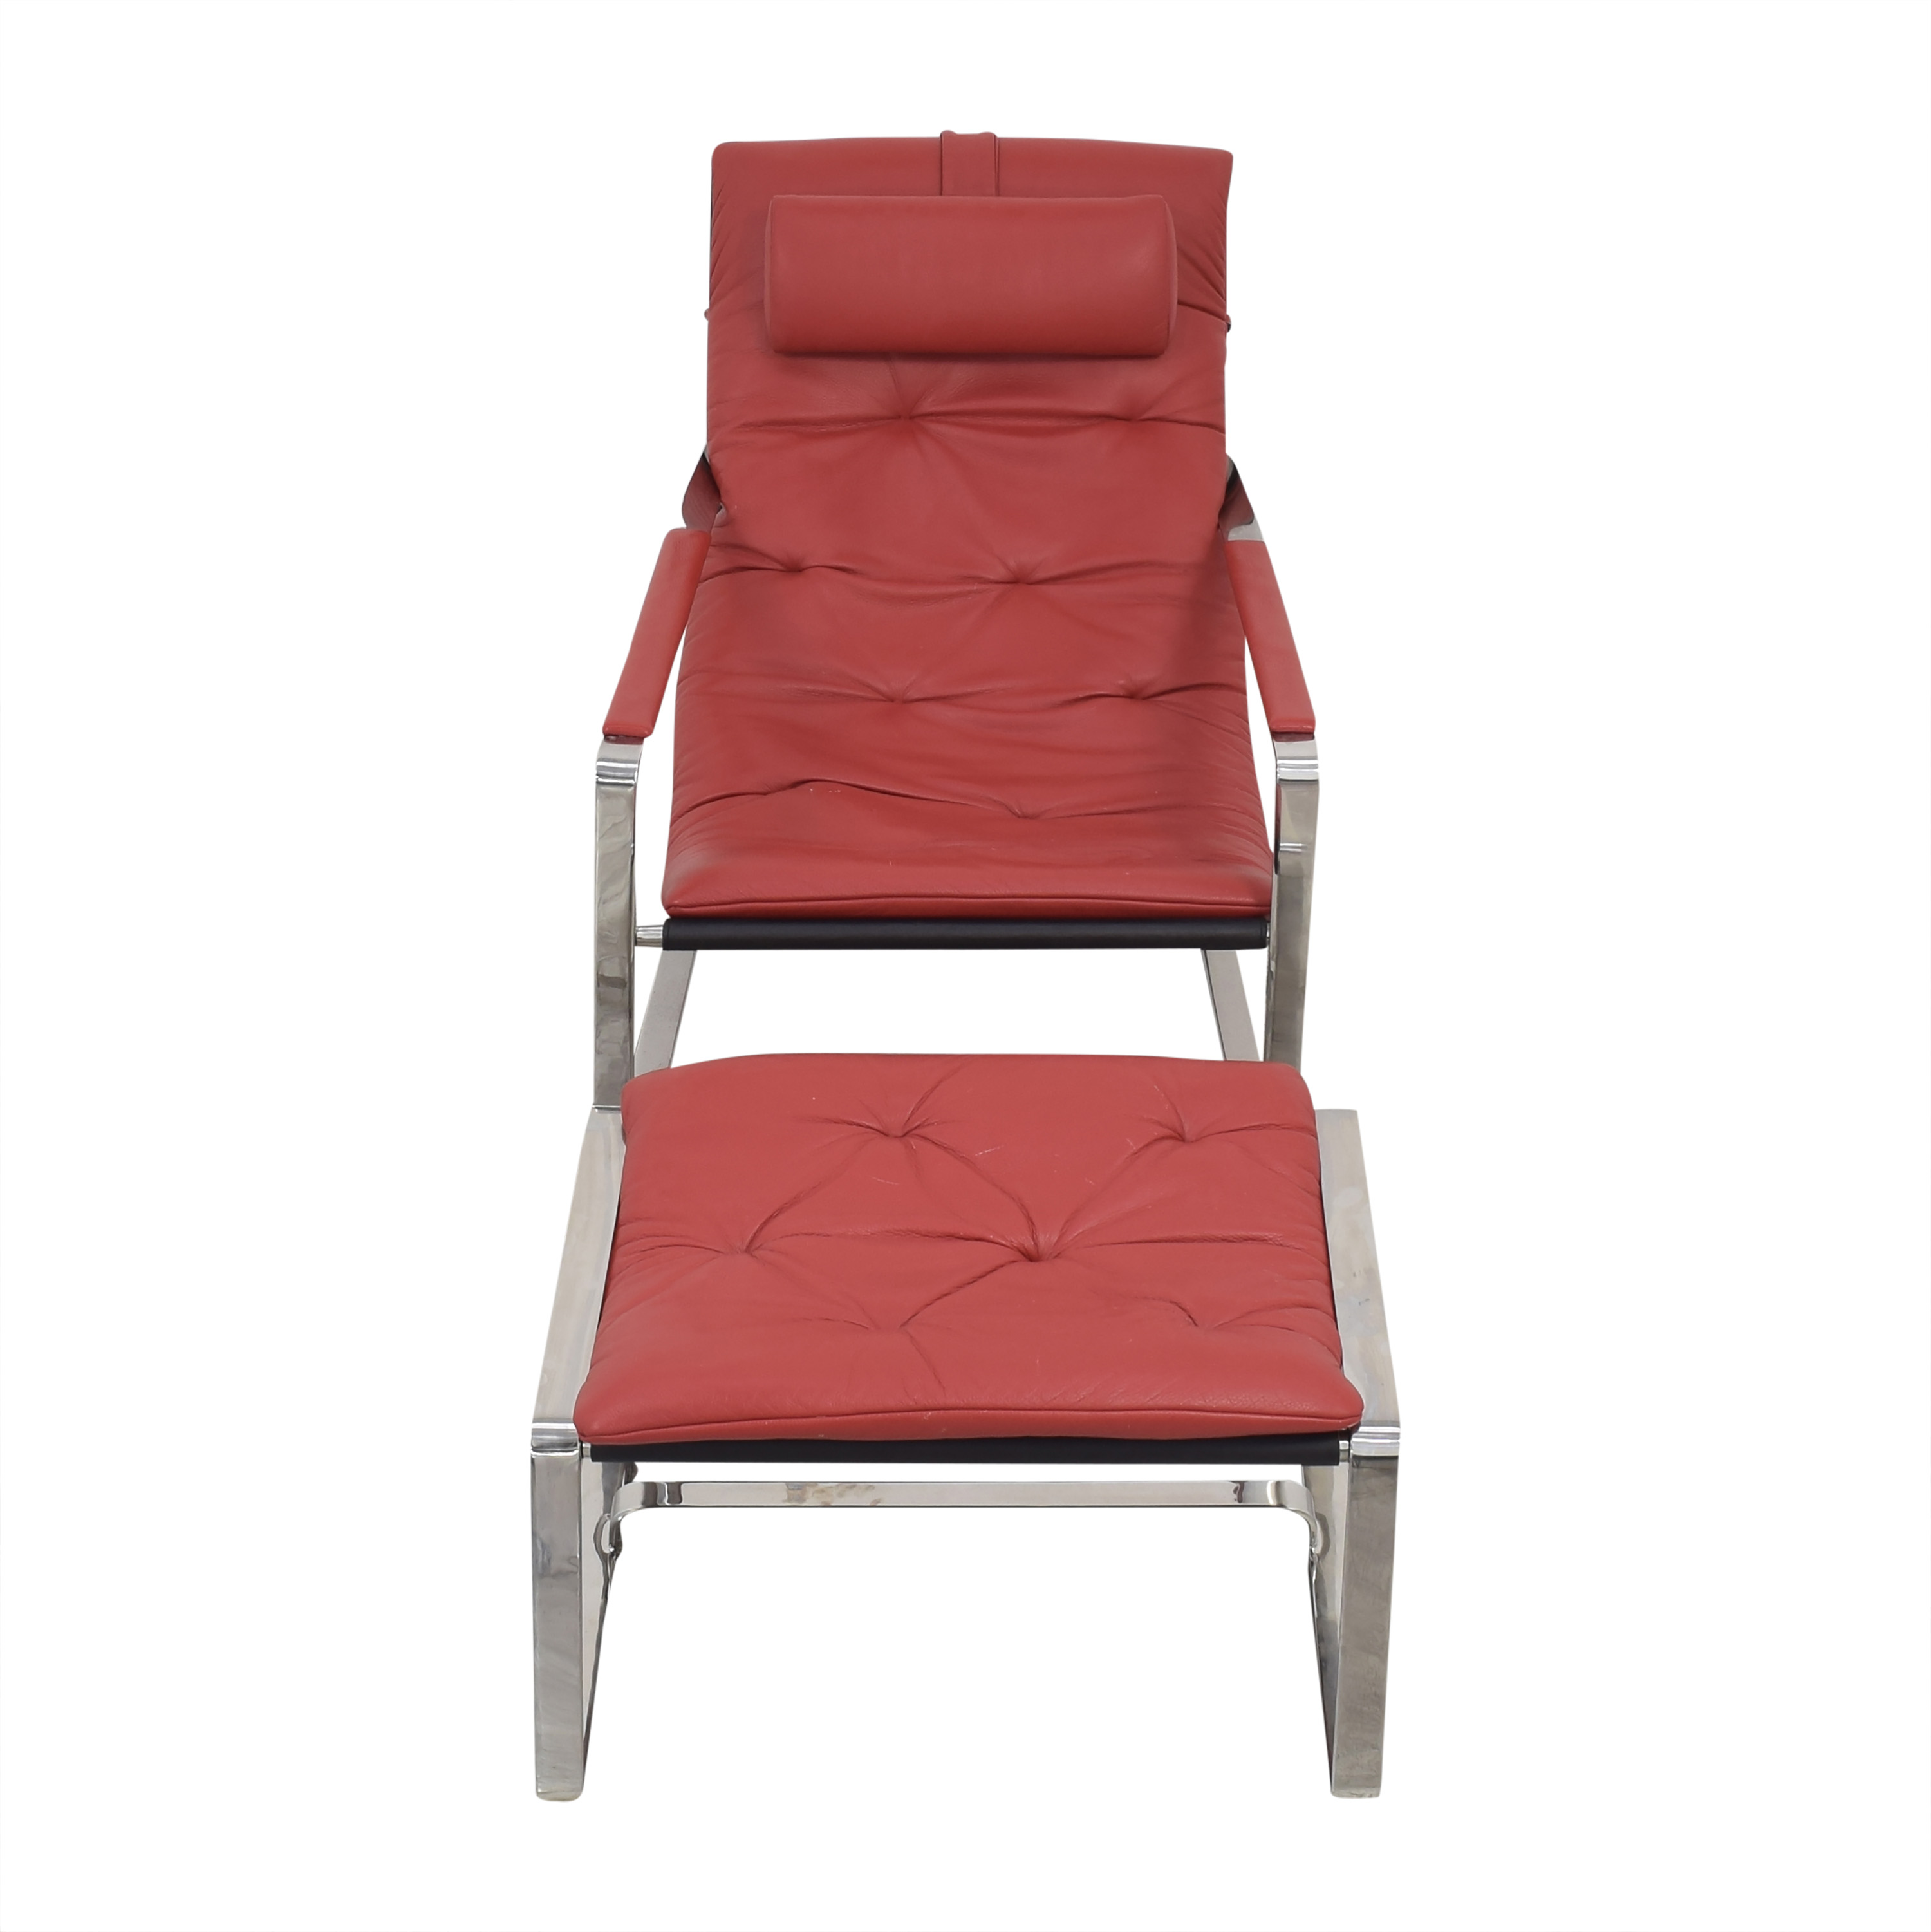 Sling Style Lounge Chair with Ottoman red and silver